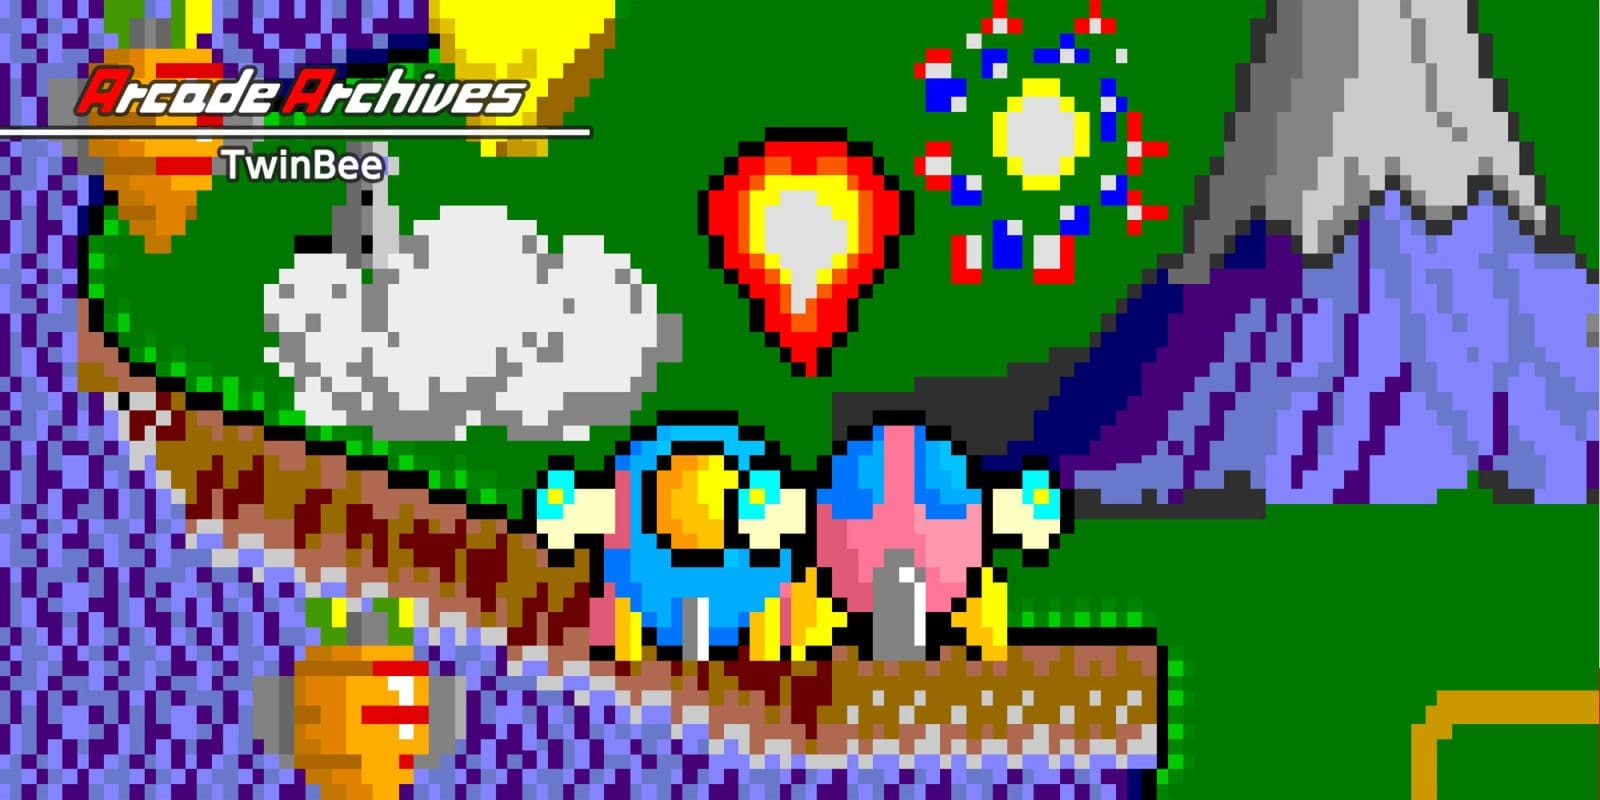 Arcade Archives TwinBee